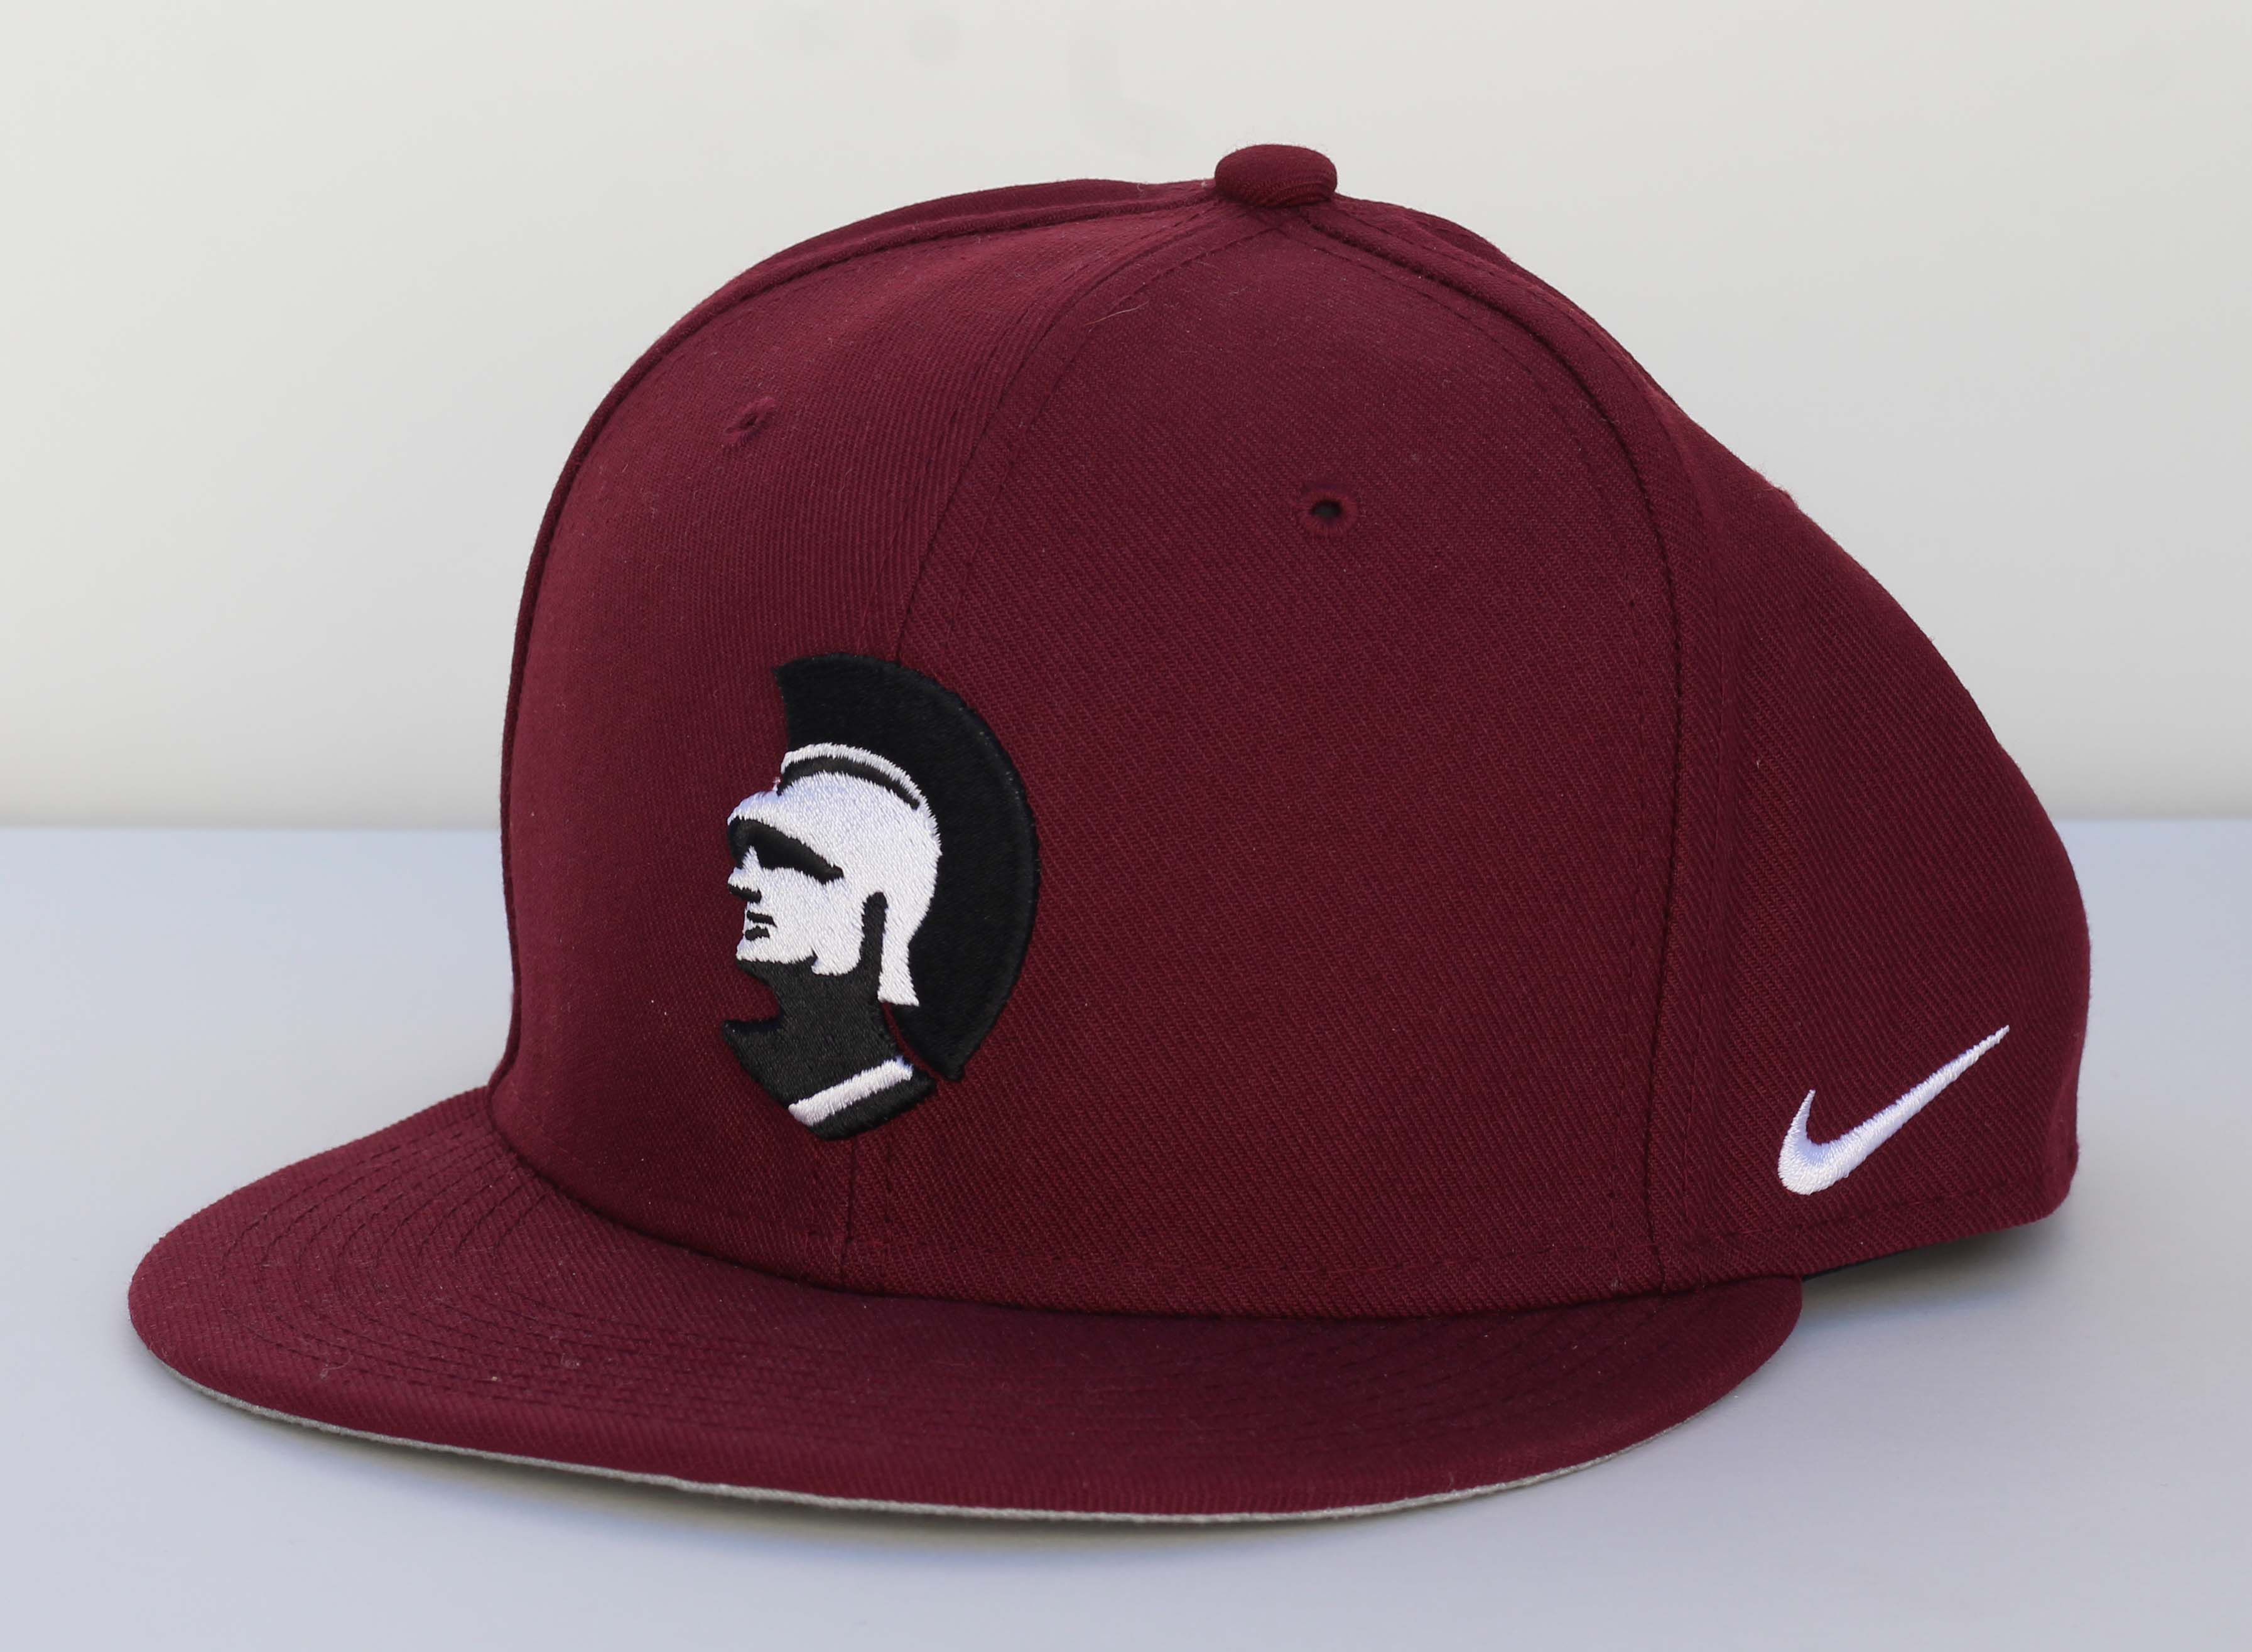 Image for the Nike Warrior Snap-Back Flat Brim Hat product